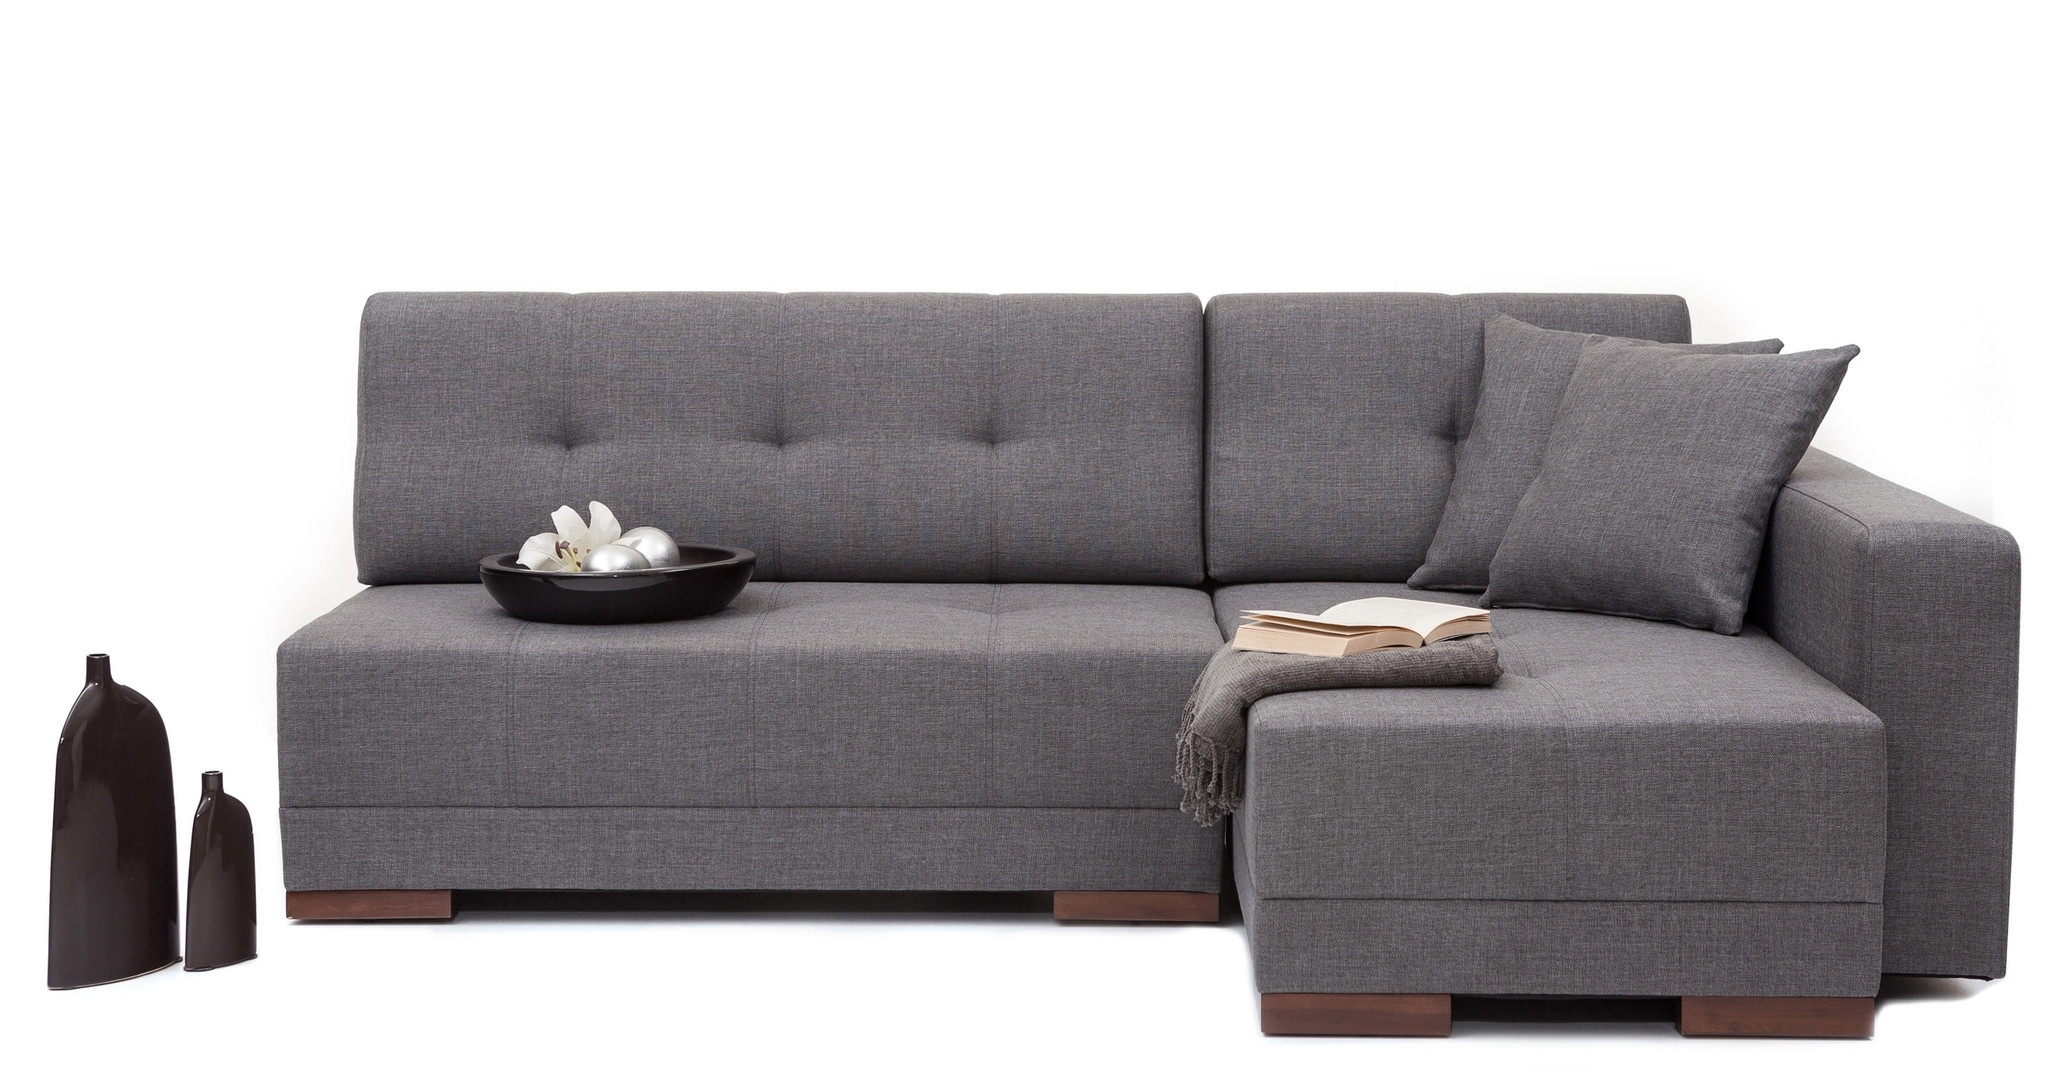 Well Liked New Convertible Sofas 46 About Remodel Sofas And Couches Set With For Convertible Sofas (View 15 of 15)